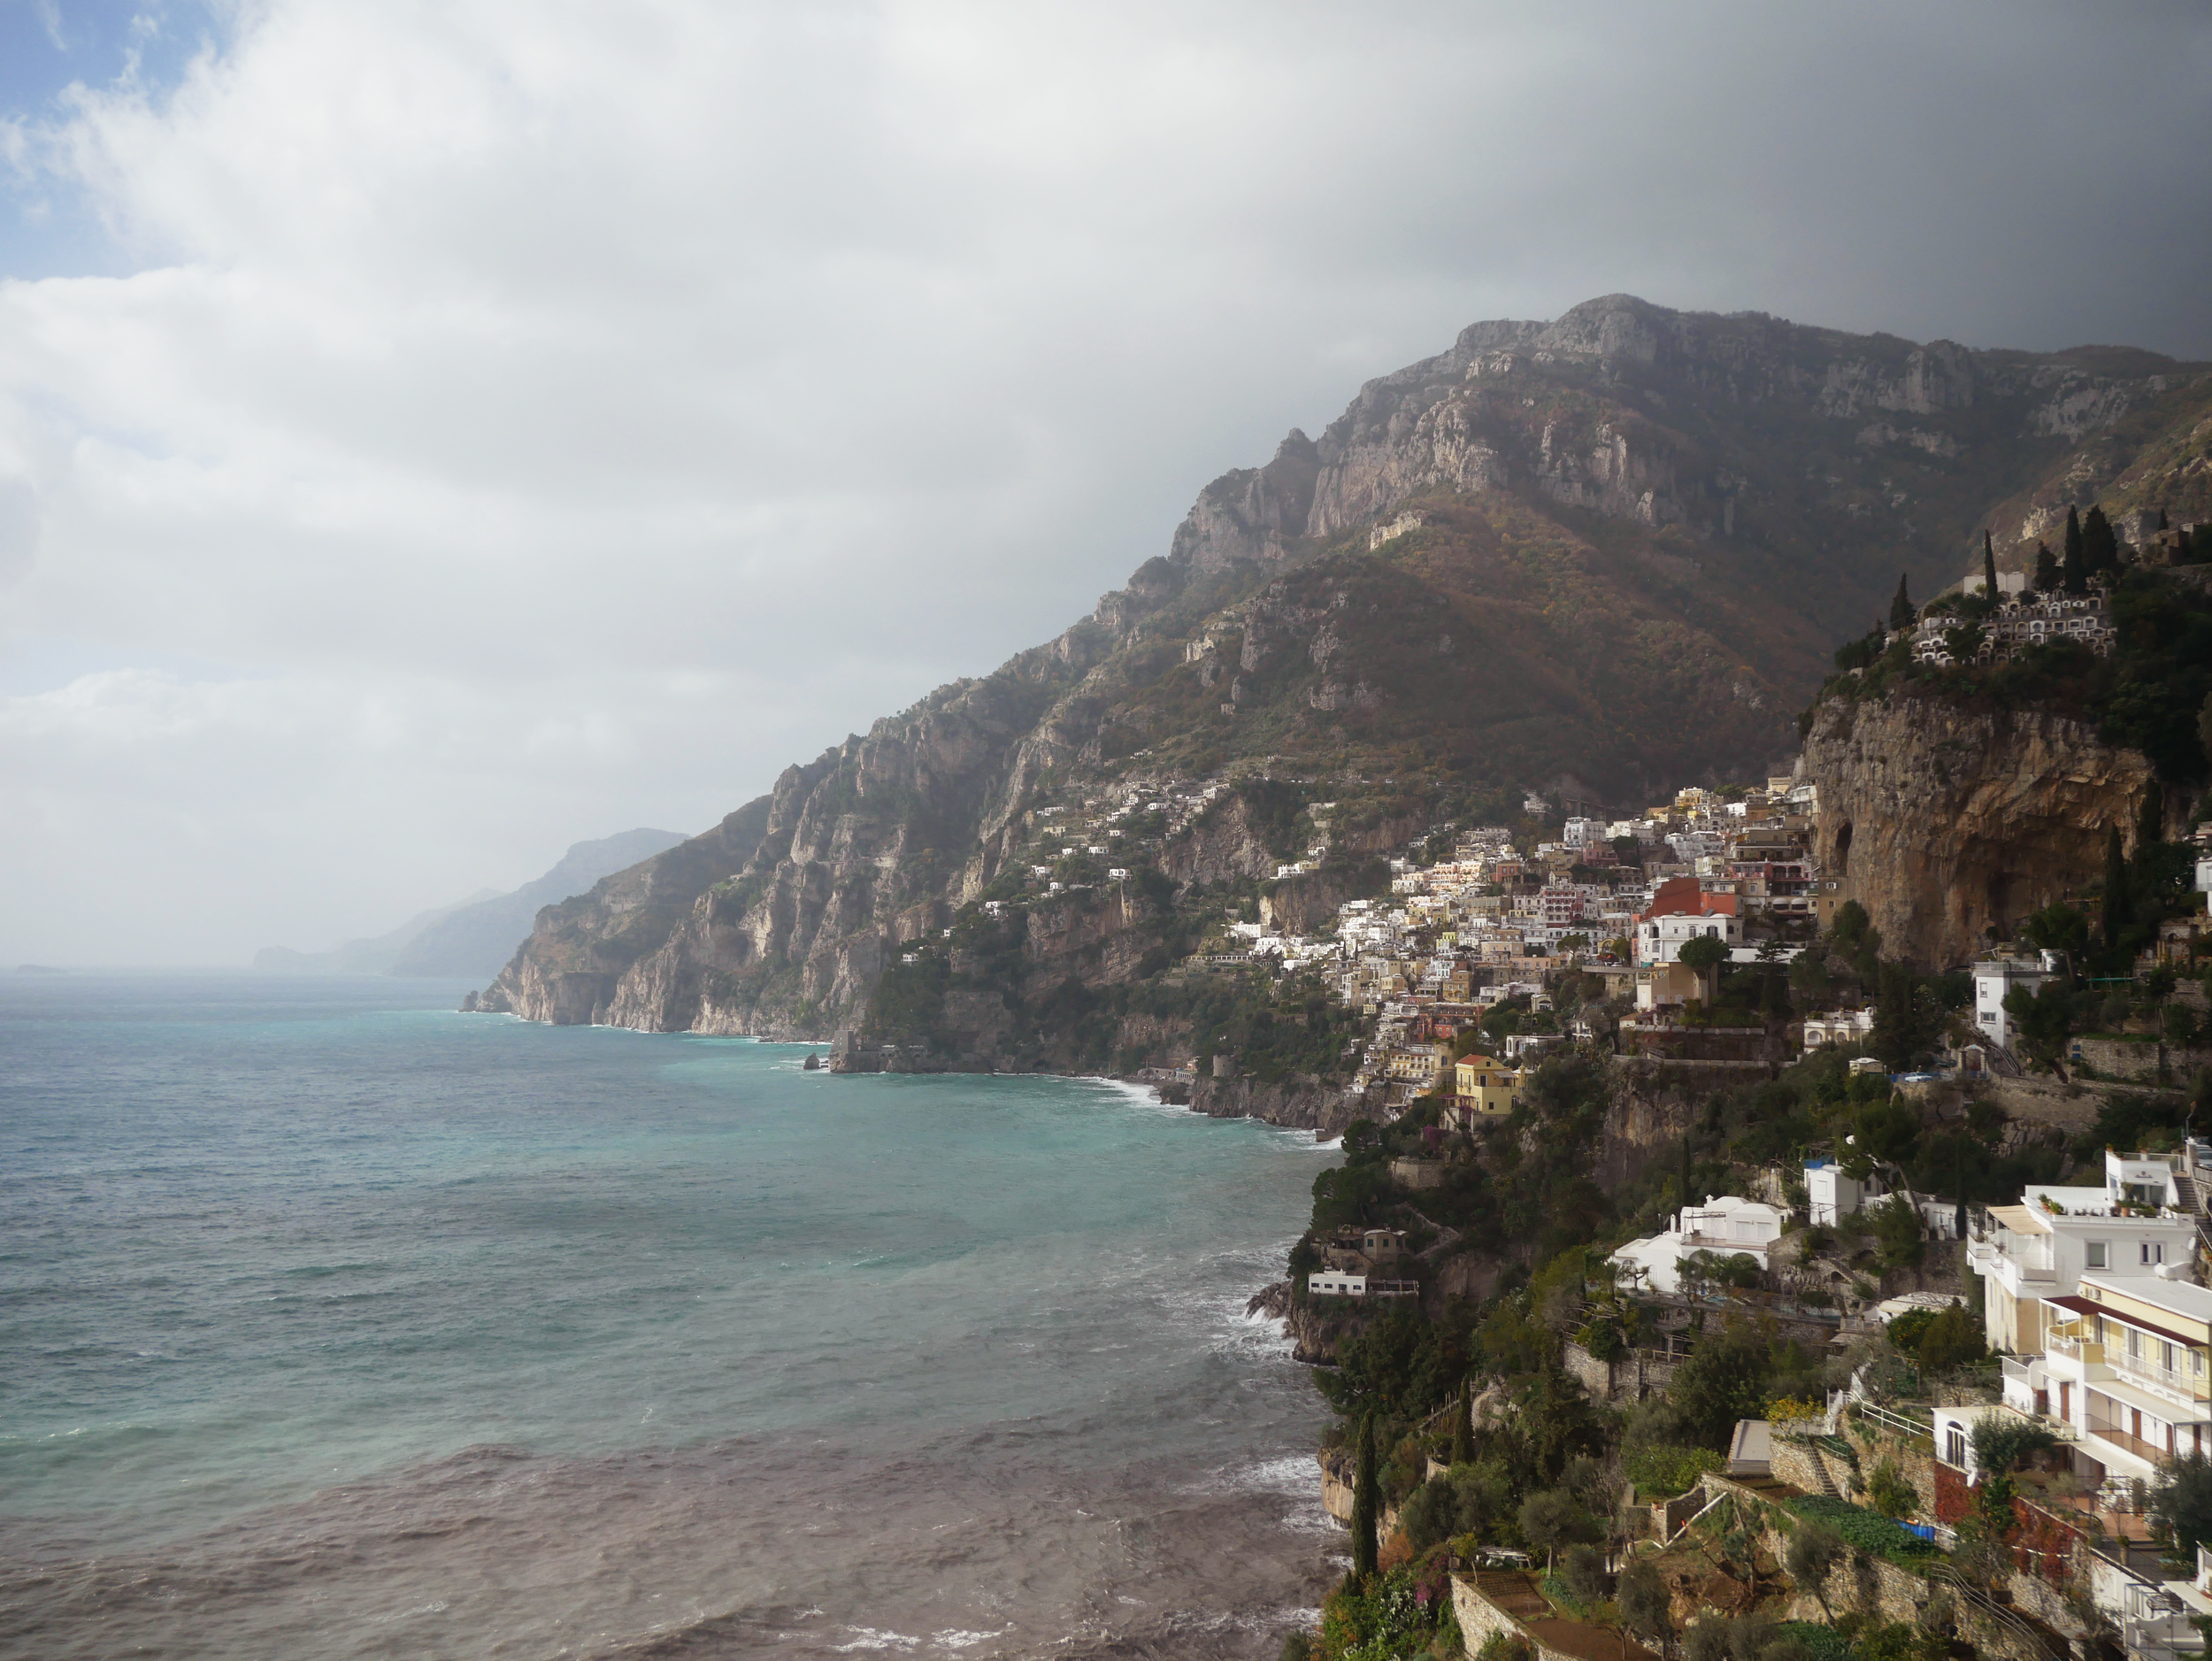 View from the bus looking back at Positano